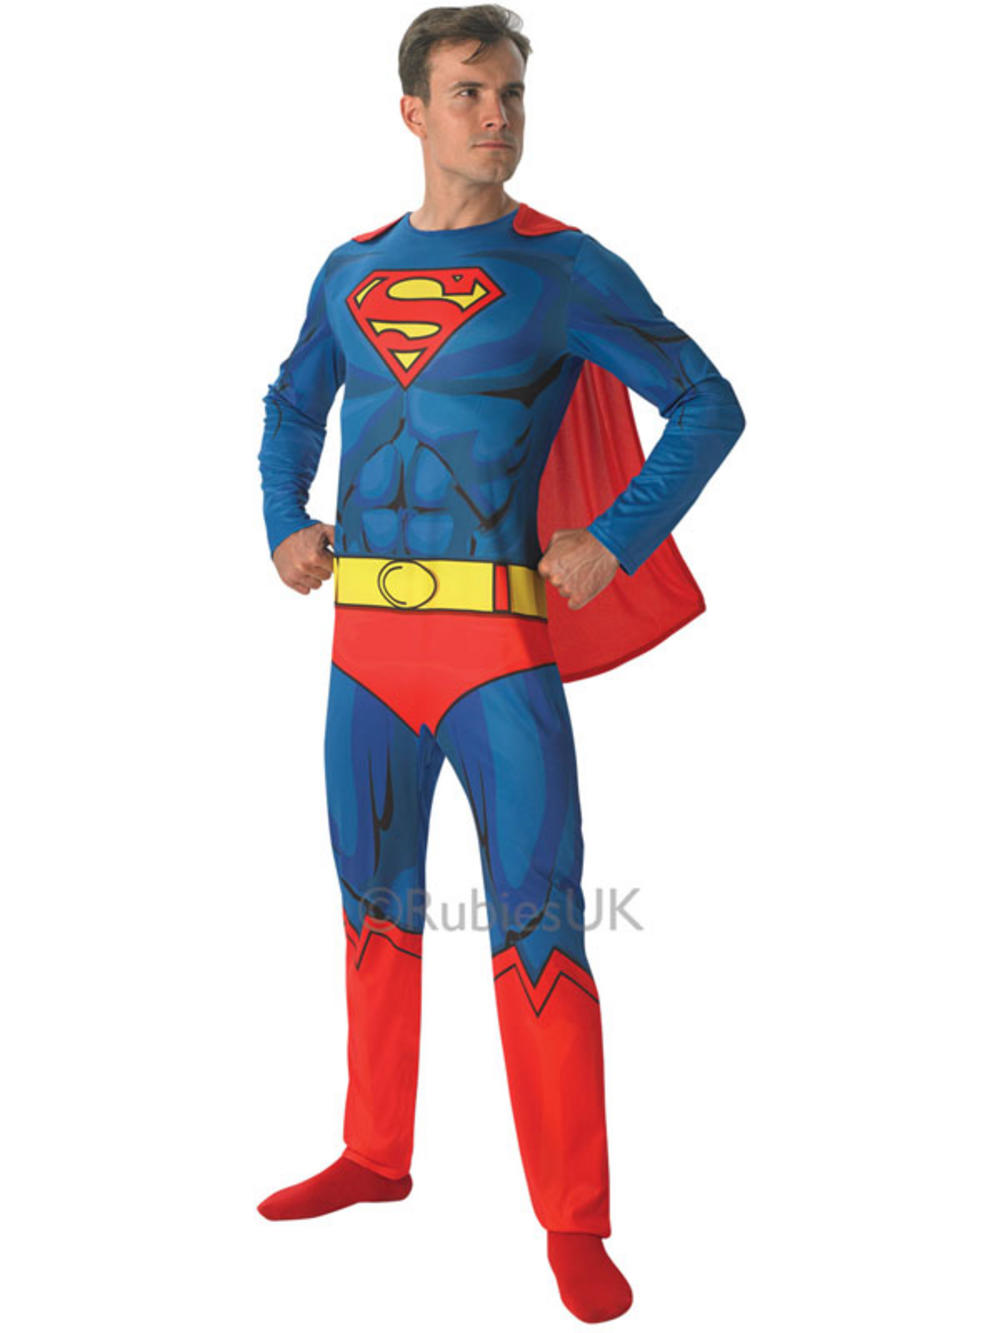 Officially licensed Deluxe Superman costume from Warner Bros. This fancy dress contains blue padded jumpsuit with all important red cape, red boot covers and Superman .